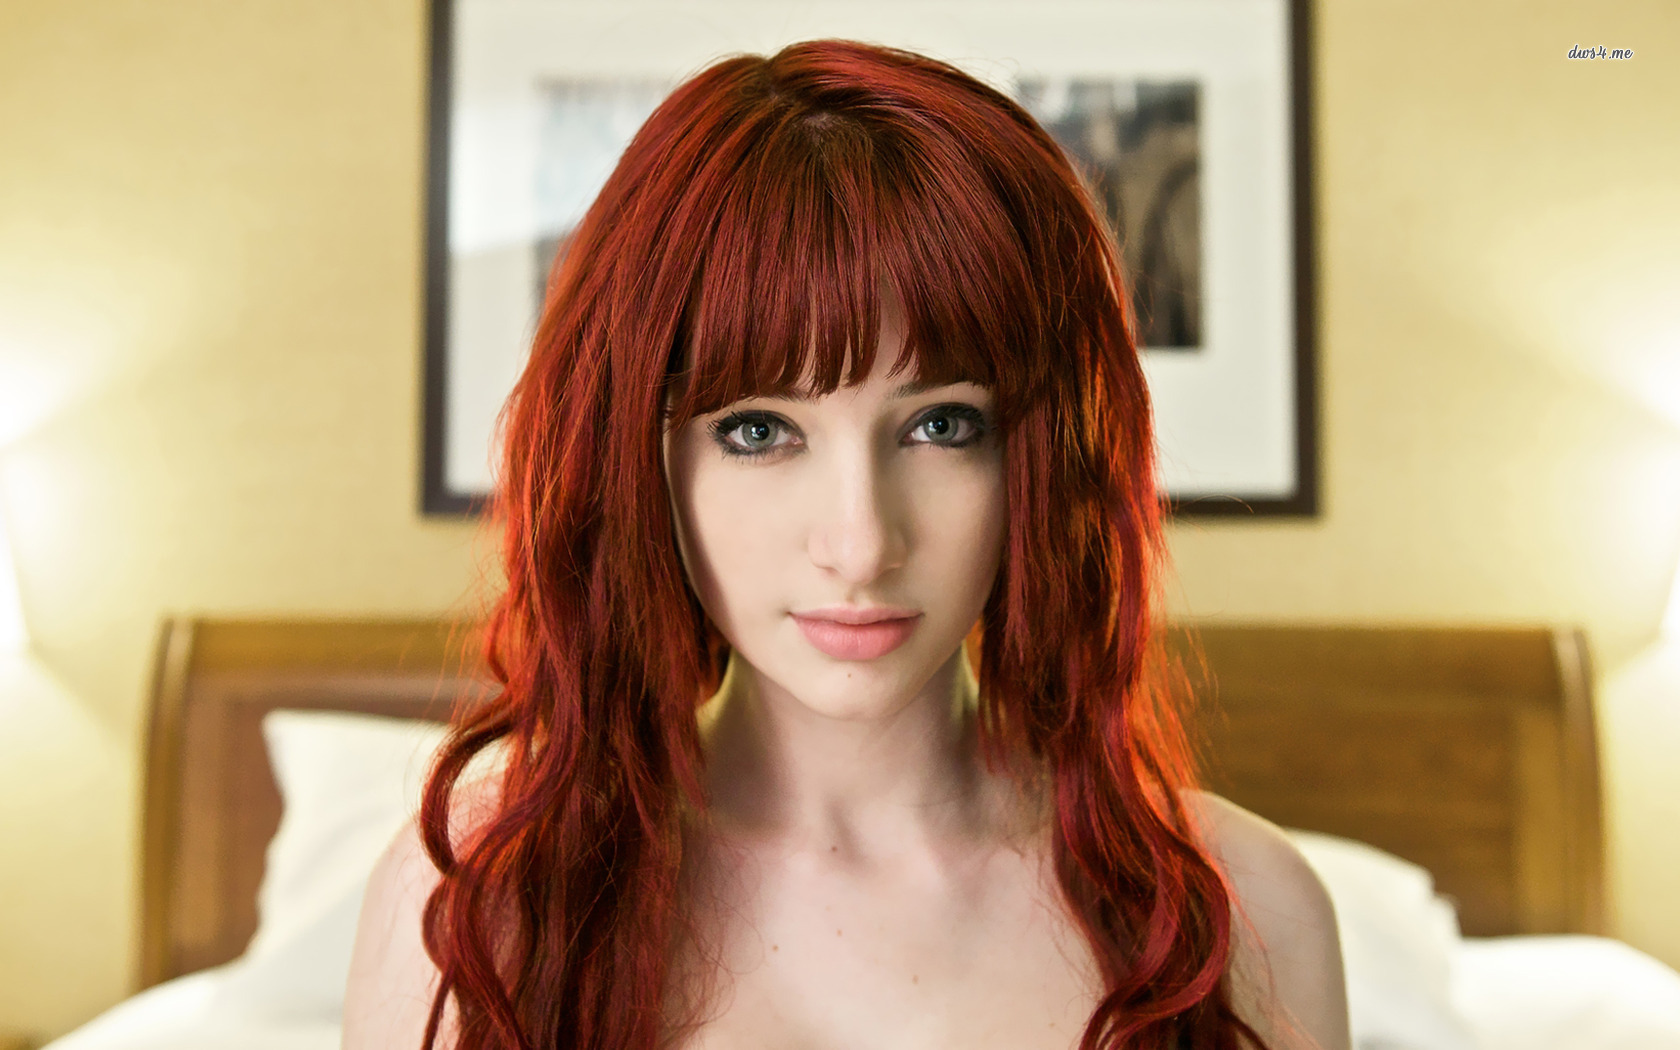 Susan coffey hd xxx sex photos for